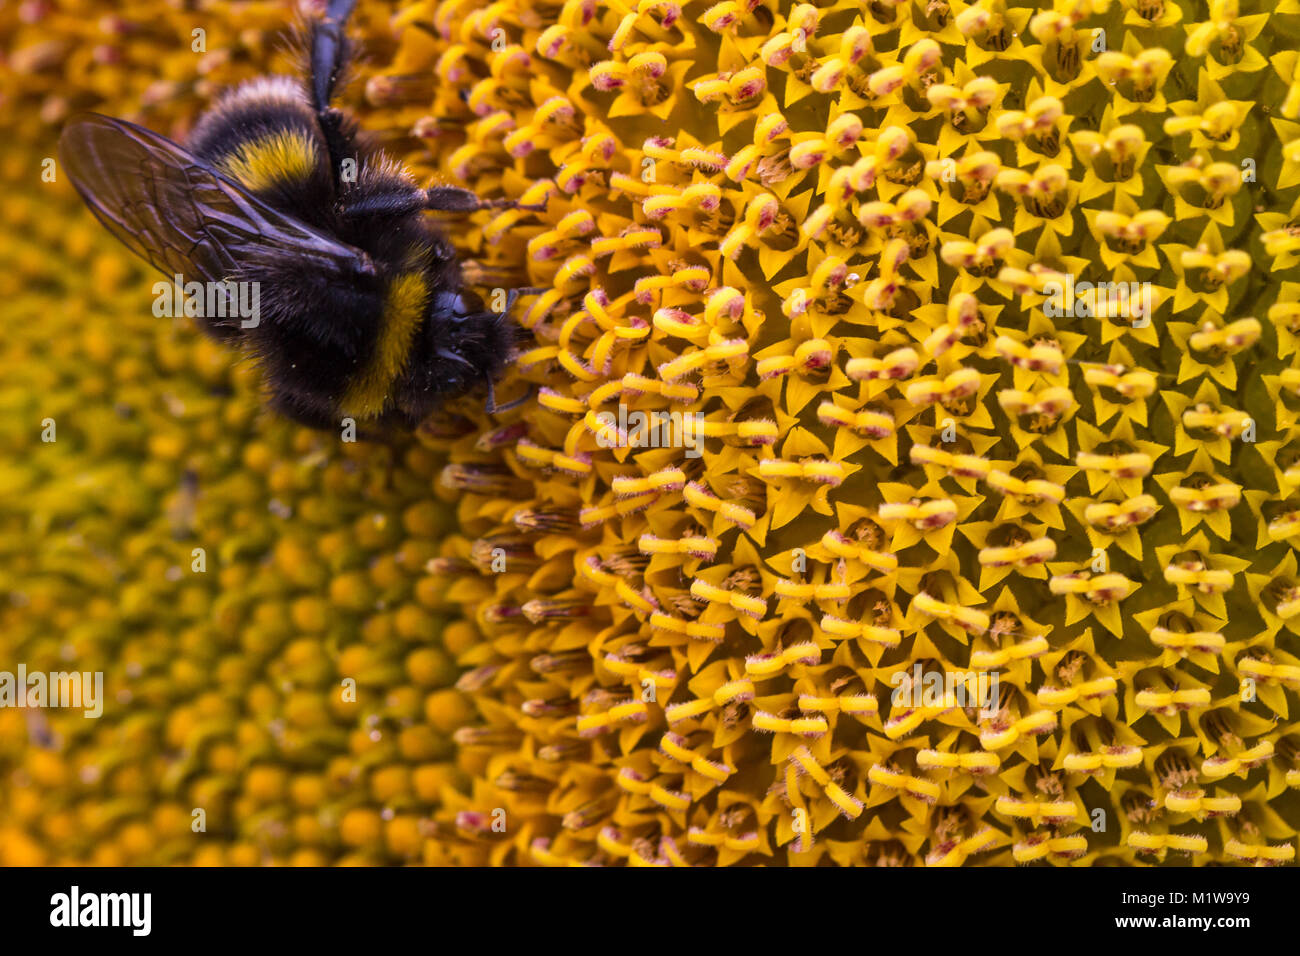 Detailed close up image of a bumble bee feeding on nectar and pollinating a sunflower.  England, UK - Stock Image